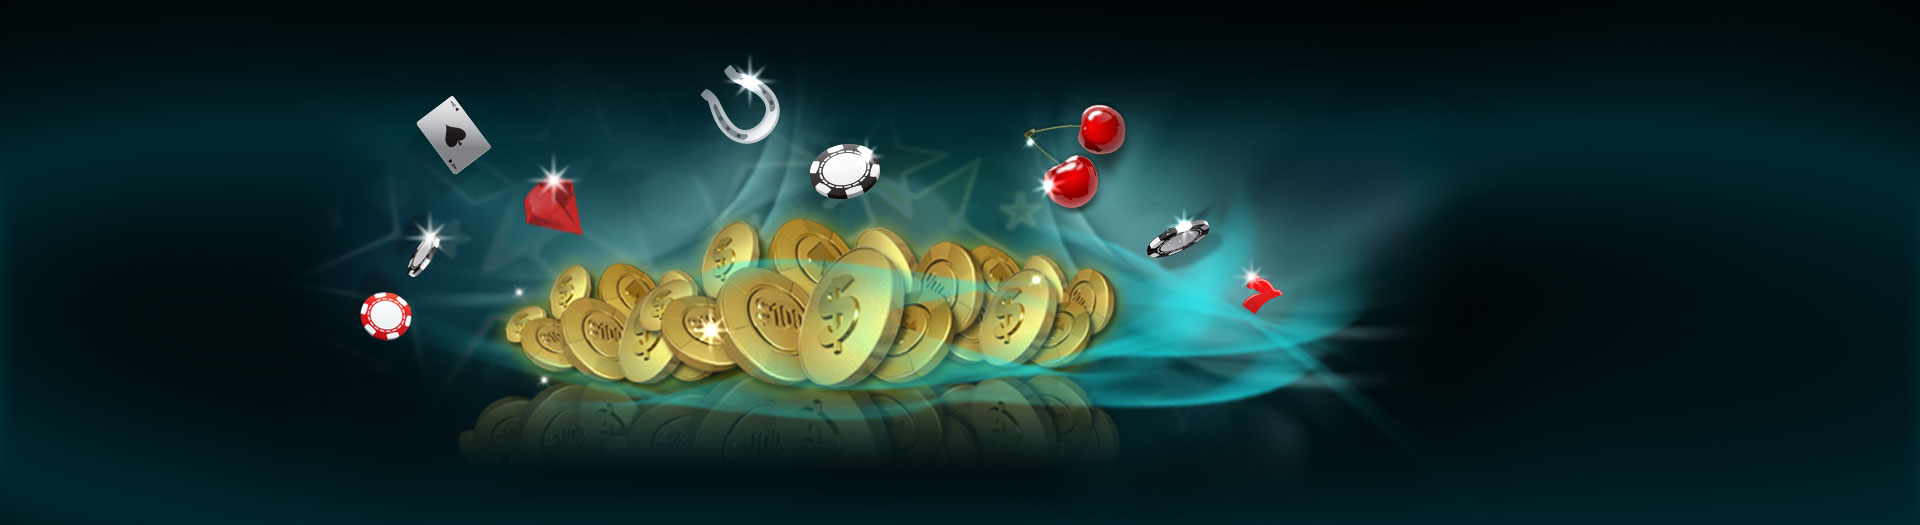 Los mejores casinos del mundo promotions daily updated 596766